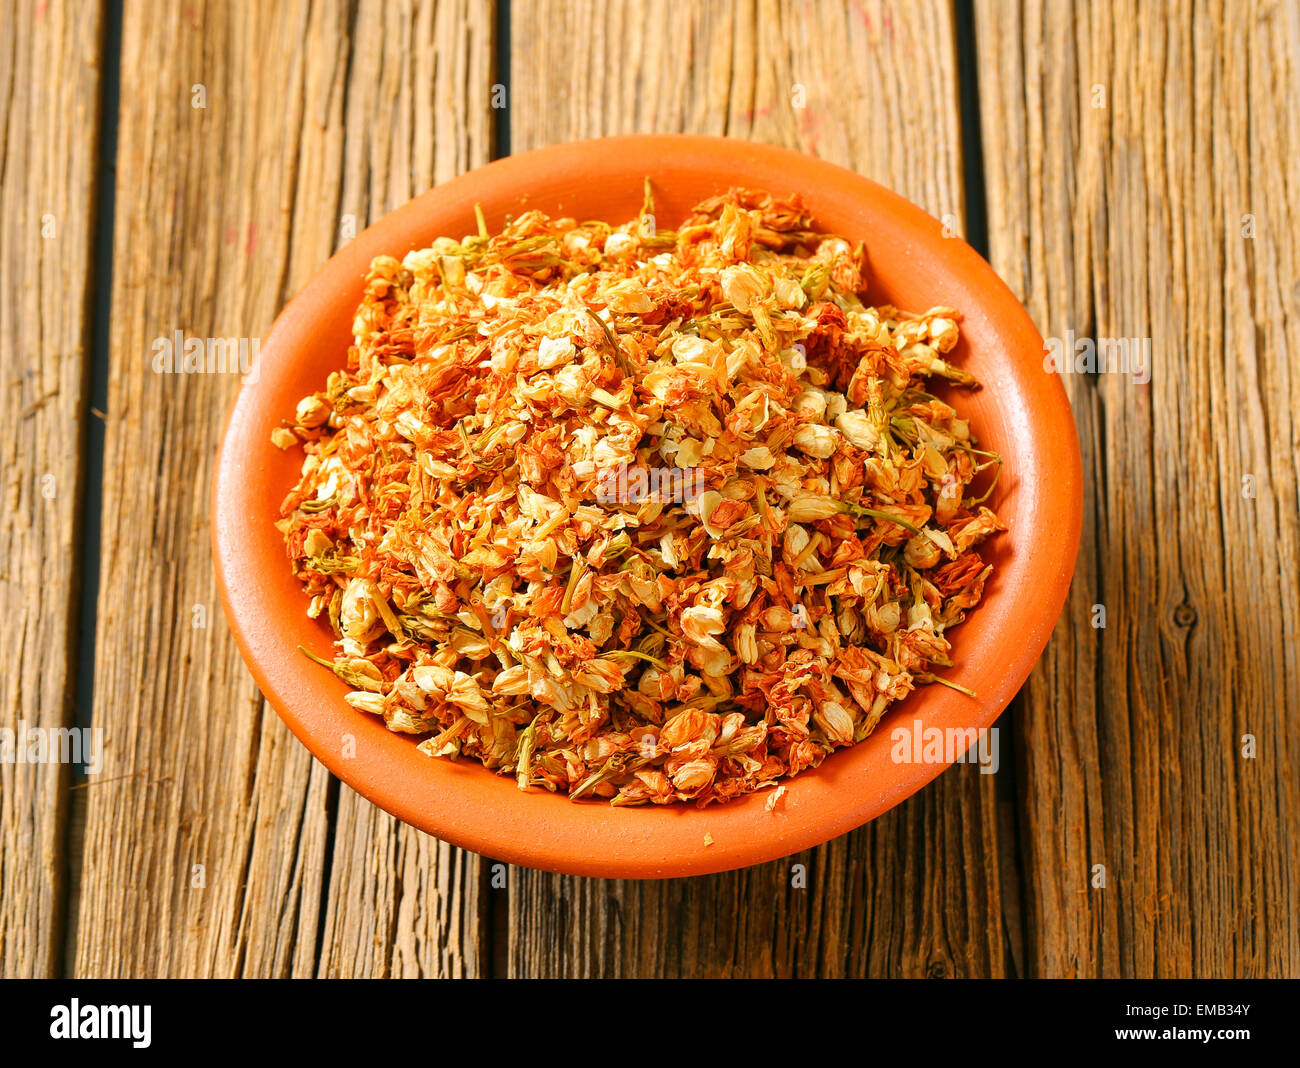 Dried Flowers Bowl Stock Photos Dried Flowers Bowl Stock Images